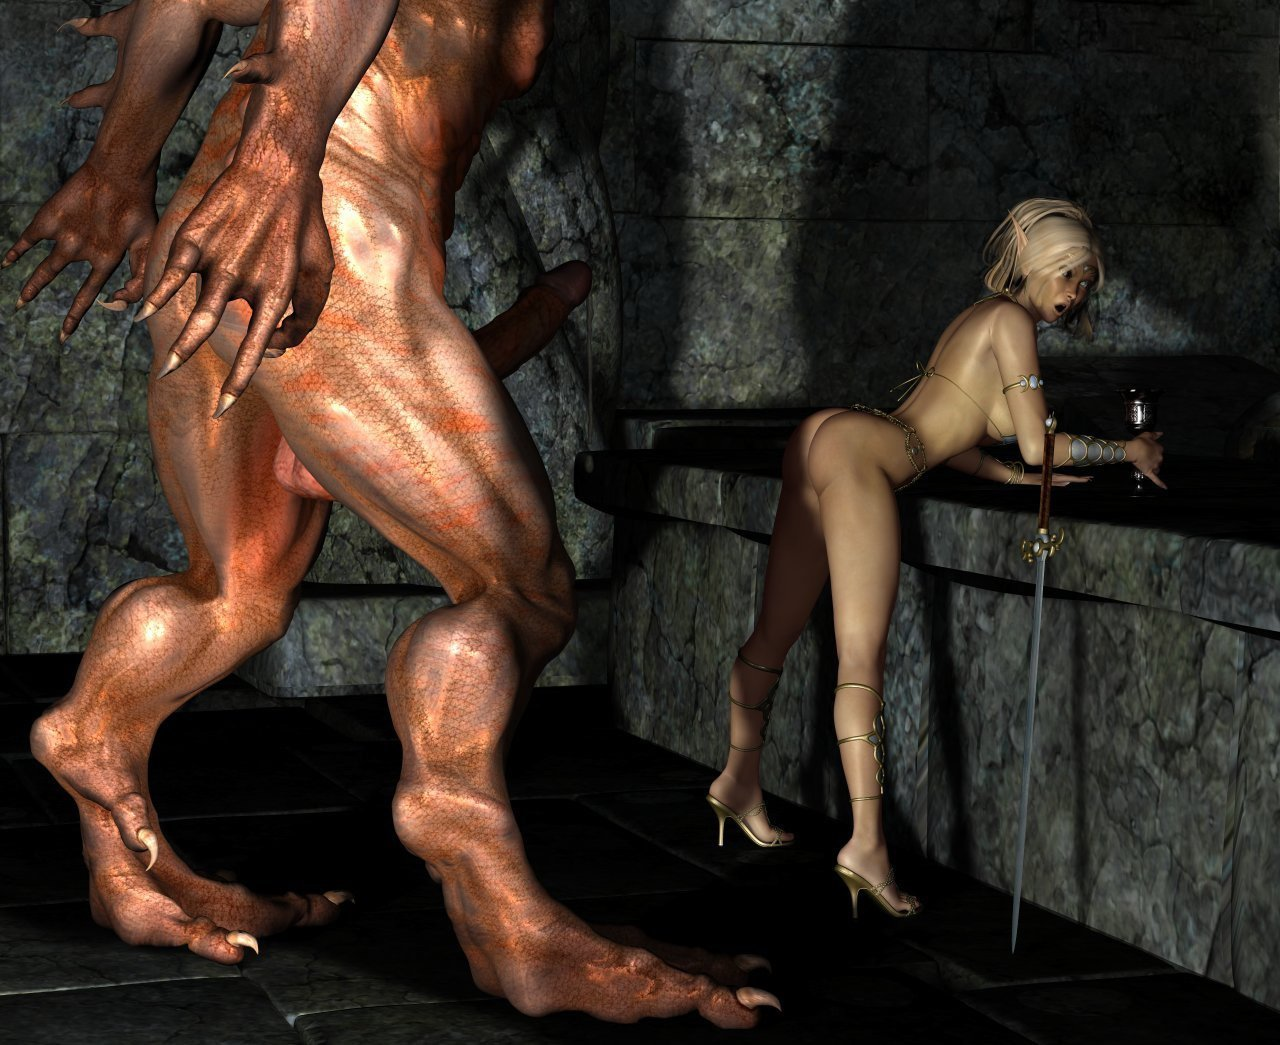 Elf dwarf demon female nude sexy scene